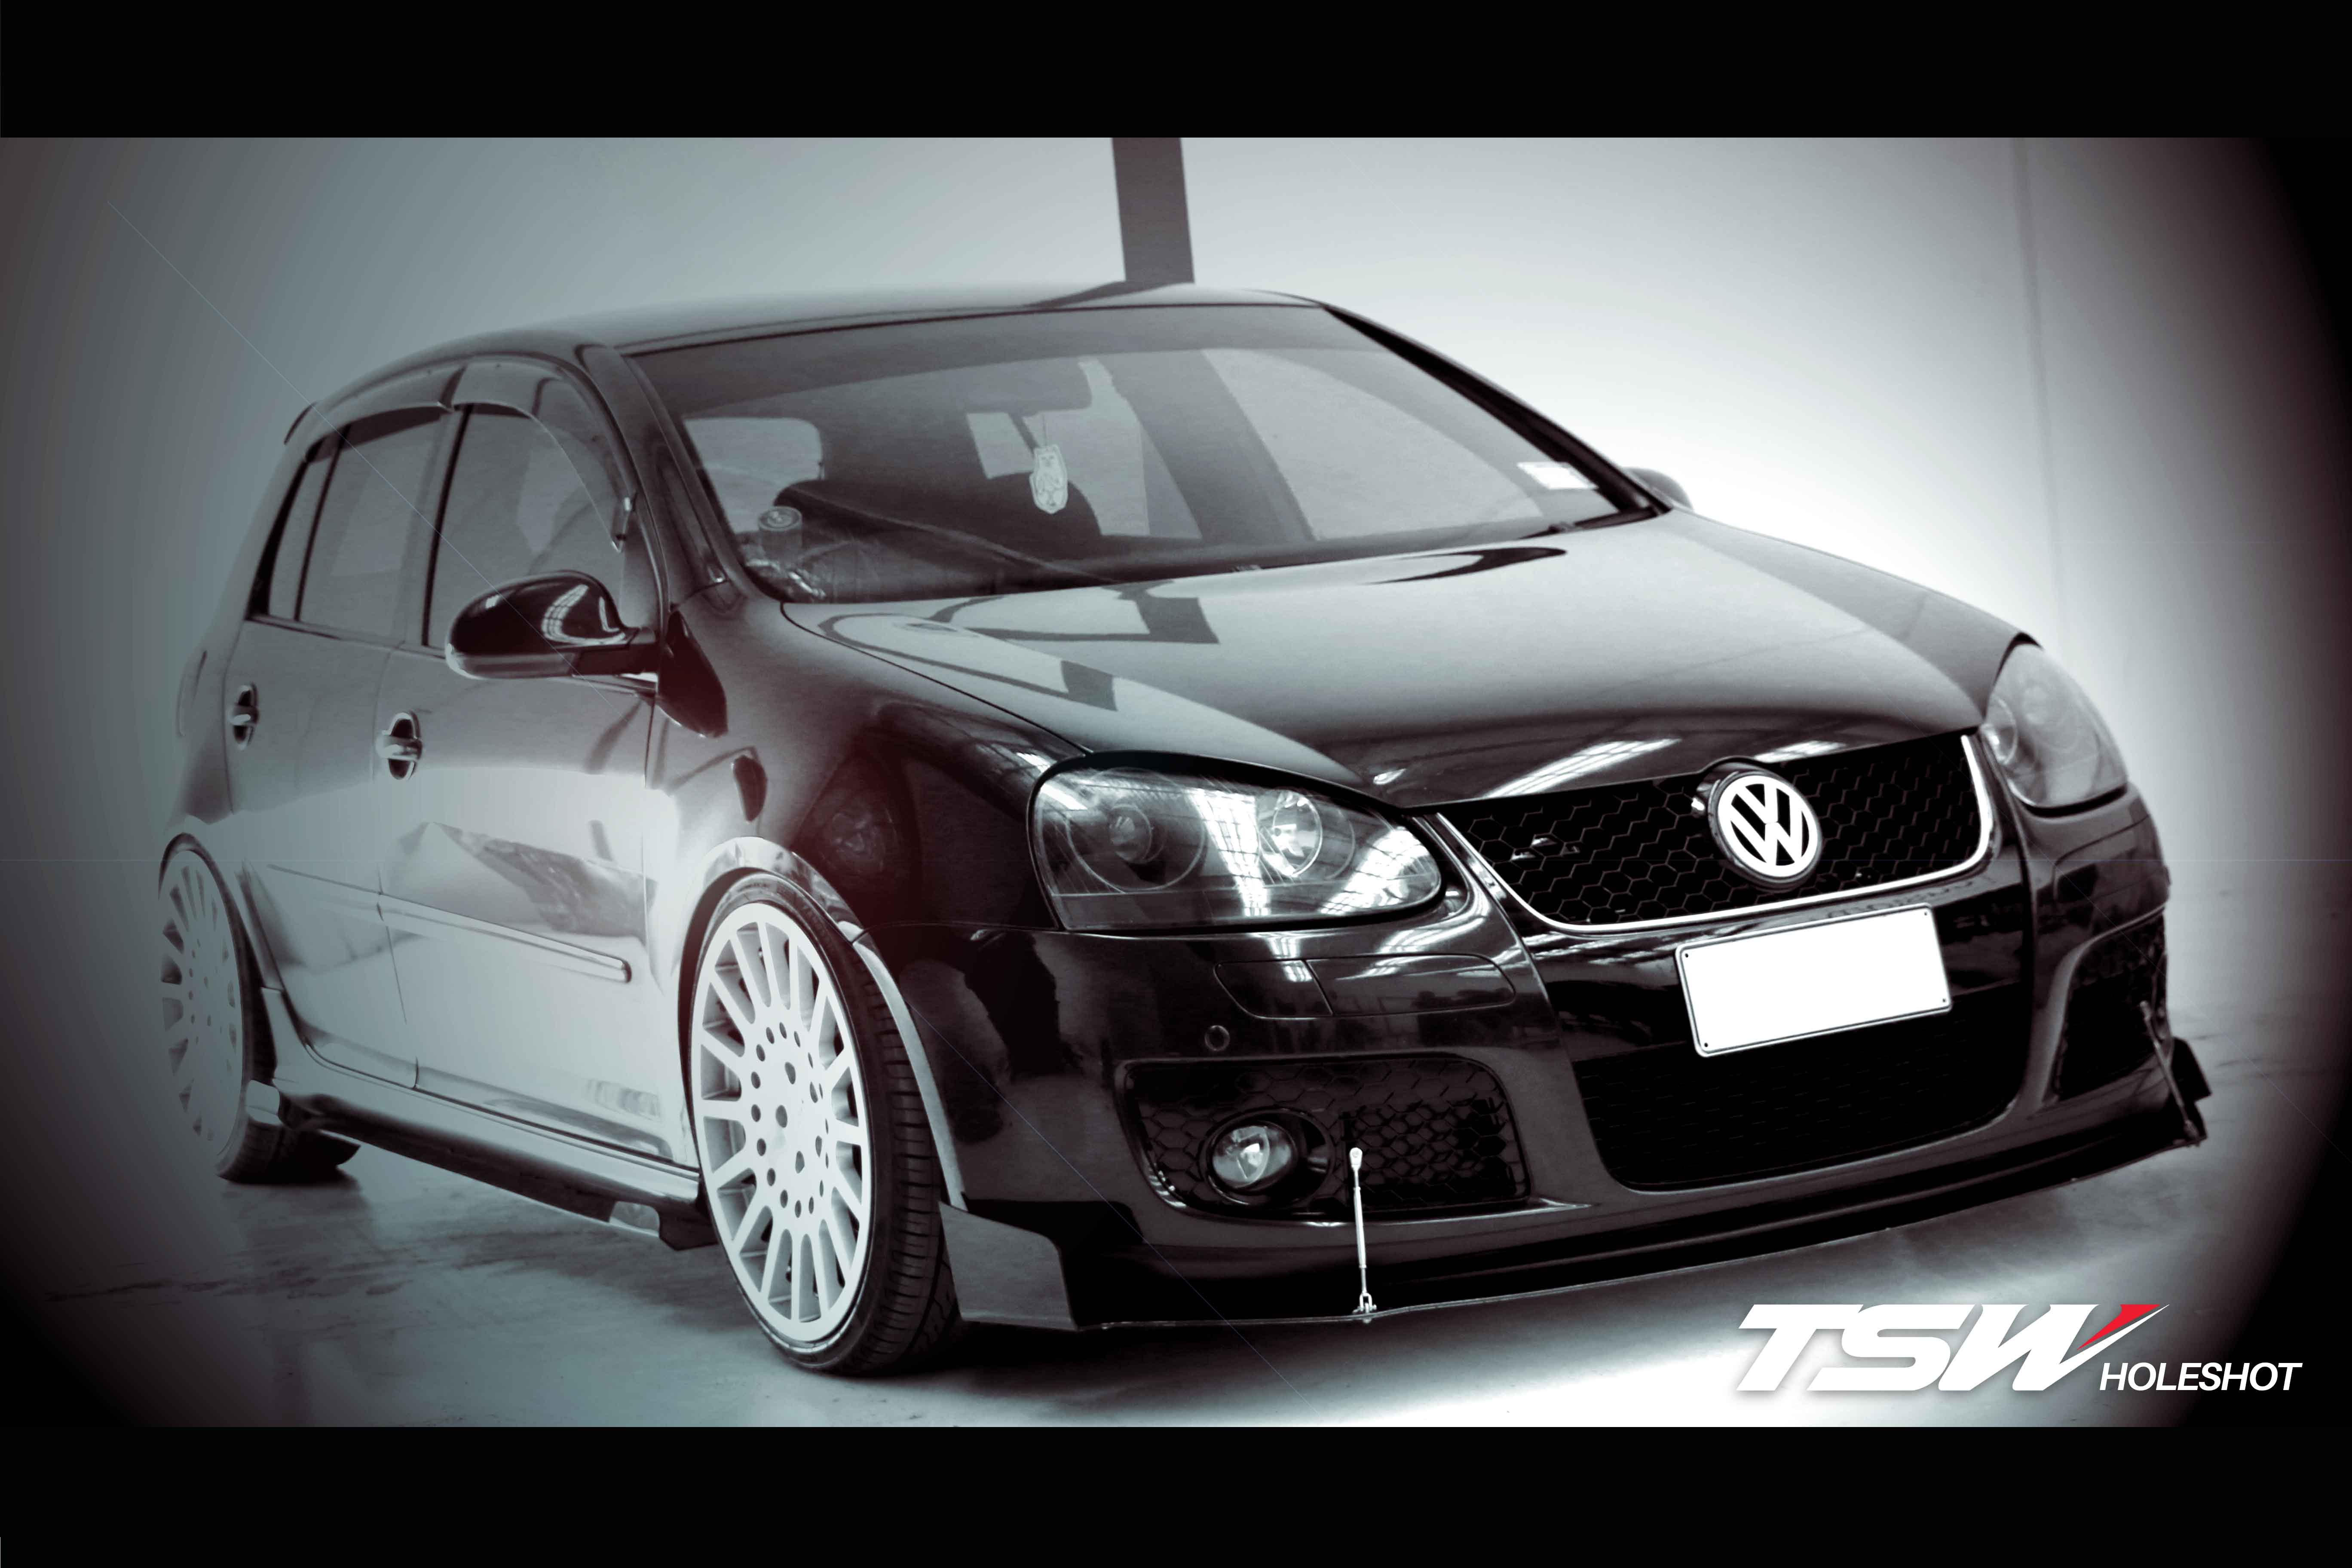 VW Golf mk5 on TSW Holeshot and Landsail LS588